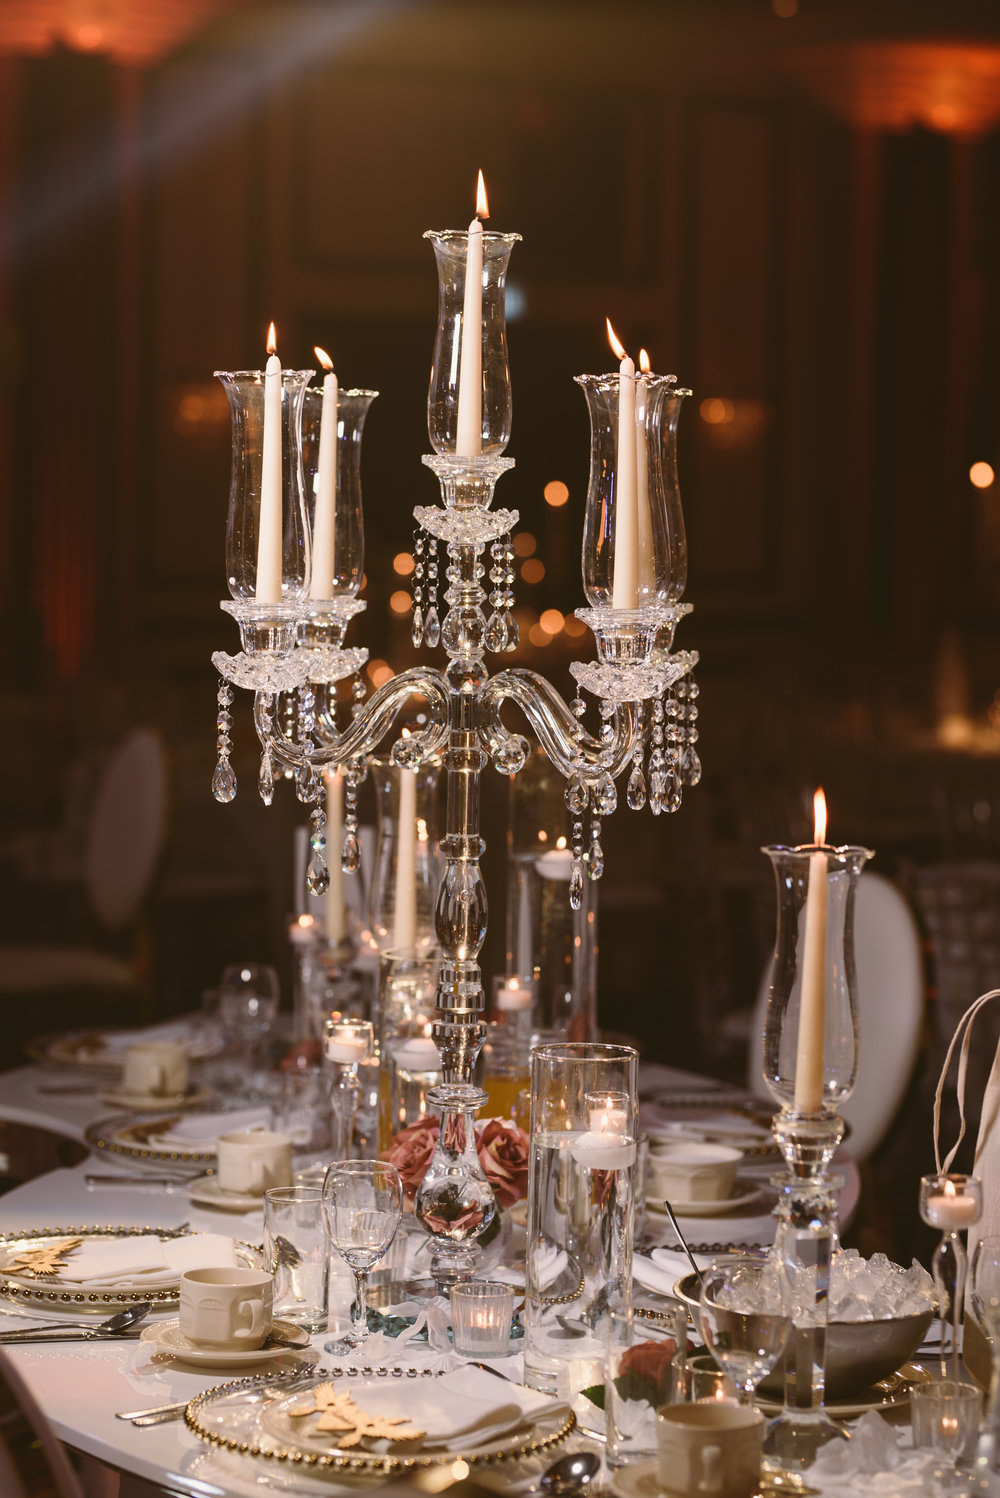 Glassware - The glassware was incorporated from the Centrepieces right through to the concept of the floating floral head-table design.